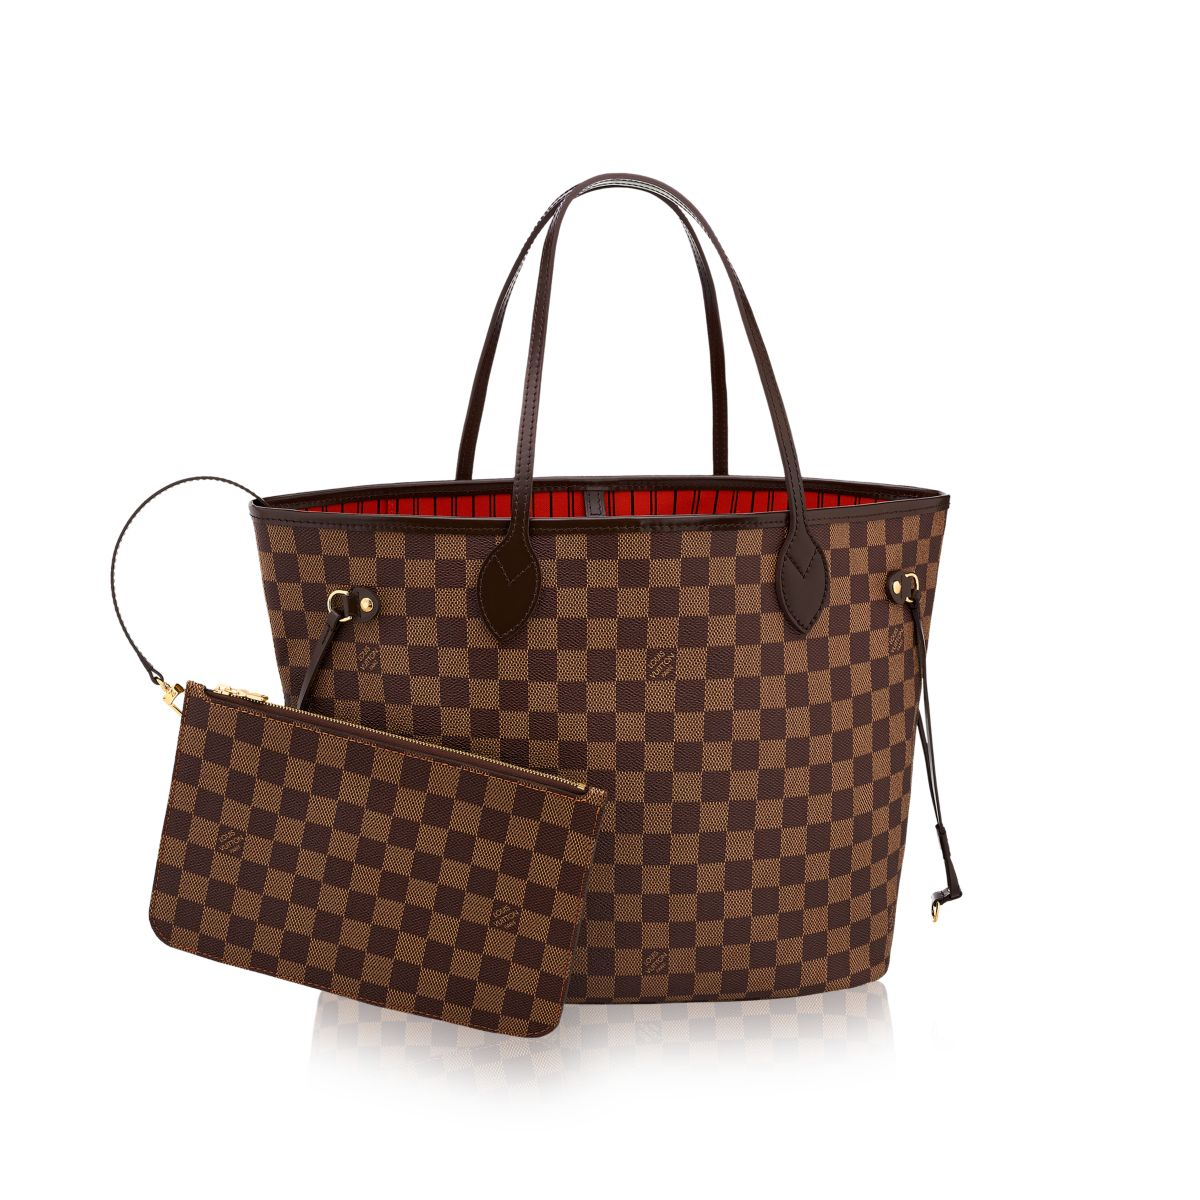 louis vuitton neverfull mm in brown damier ebene canvas. Black Bedroom Furniture Sets. Home Design Ideas